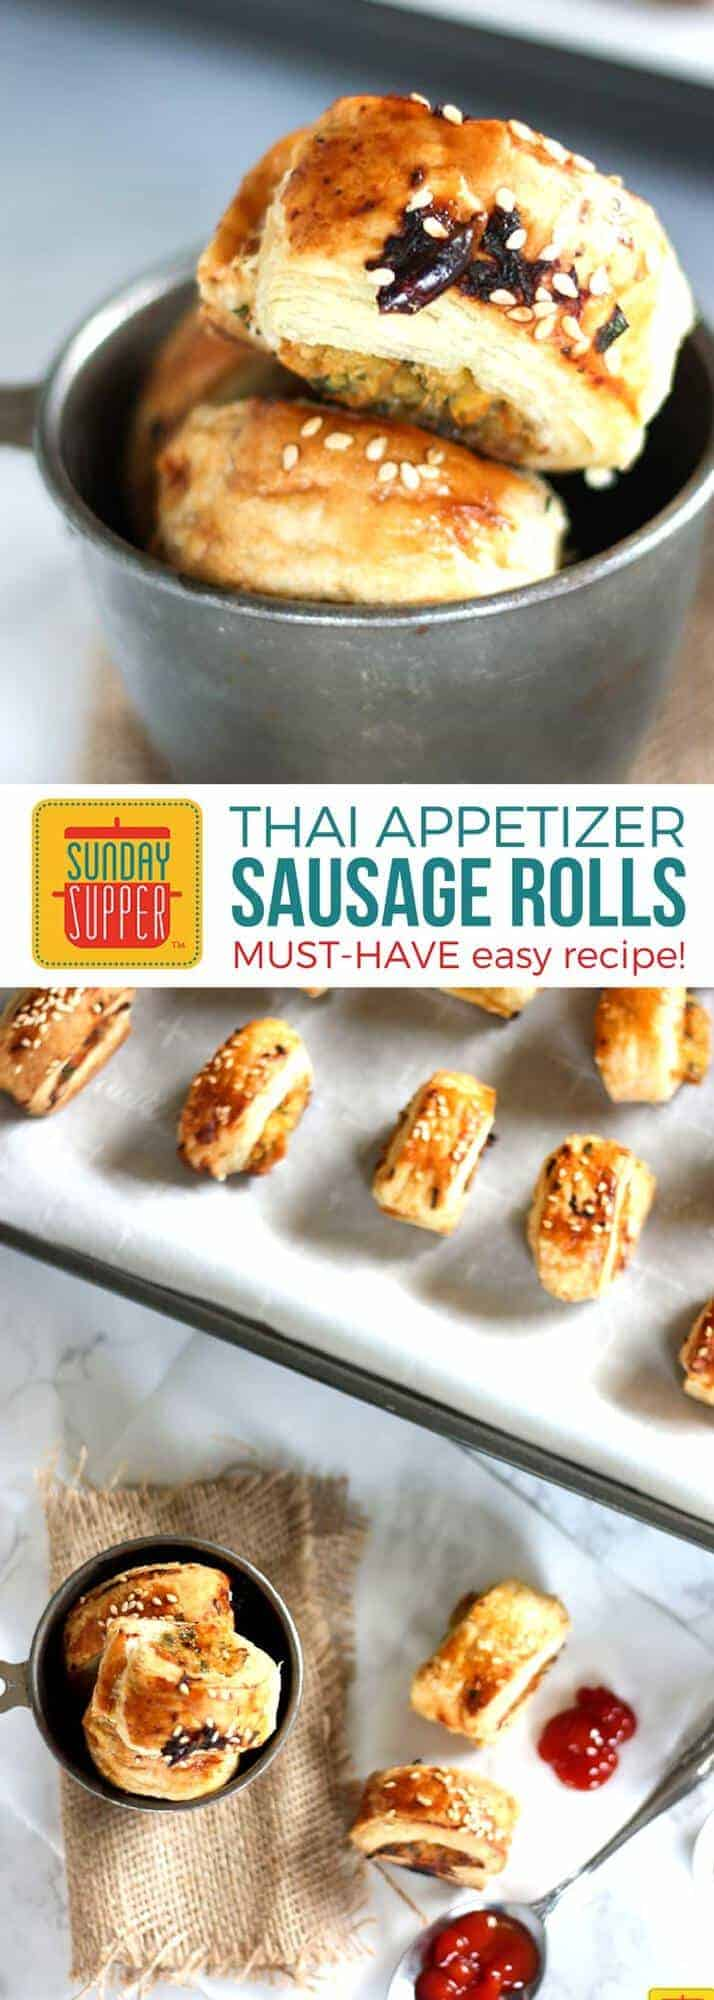 Thai Sausage Rolls are the PERFECT finger food for a party! Easy to make, delicious & fuss free makes this one of our favorite New Year's Eve Menu Ideas! Easy appetizer recipes like our Thai Sausage Rolls are perfect for game day too. They are easy football food for a crowd full of bite sized deliciousness! #SundaySupper #AppetizerRecipes #ThaiSausageRolls #EasyFootballFood